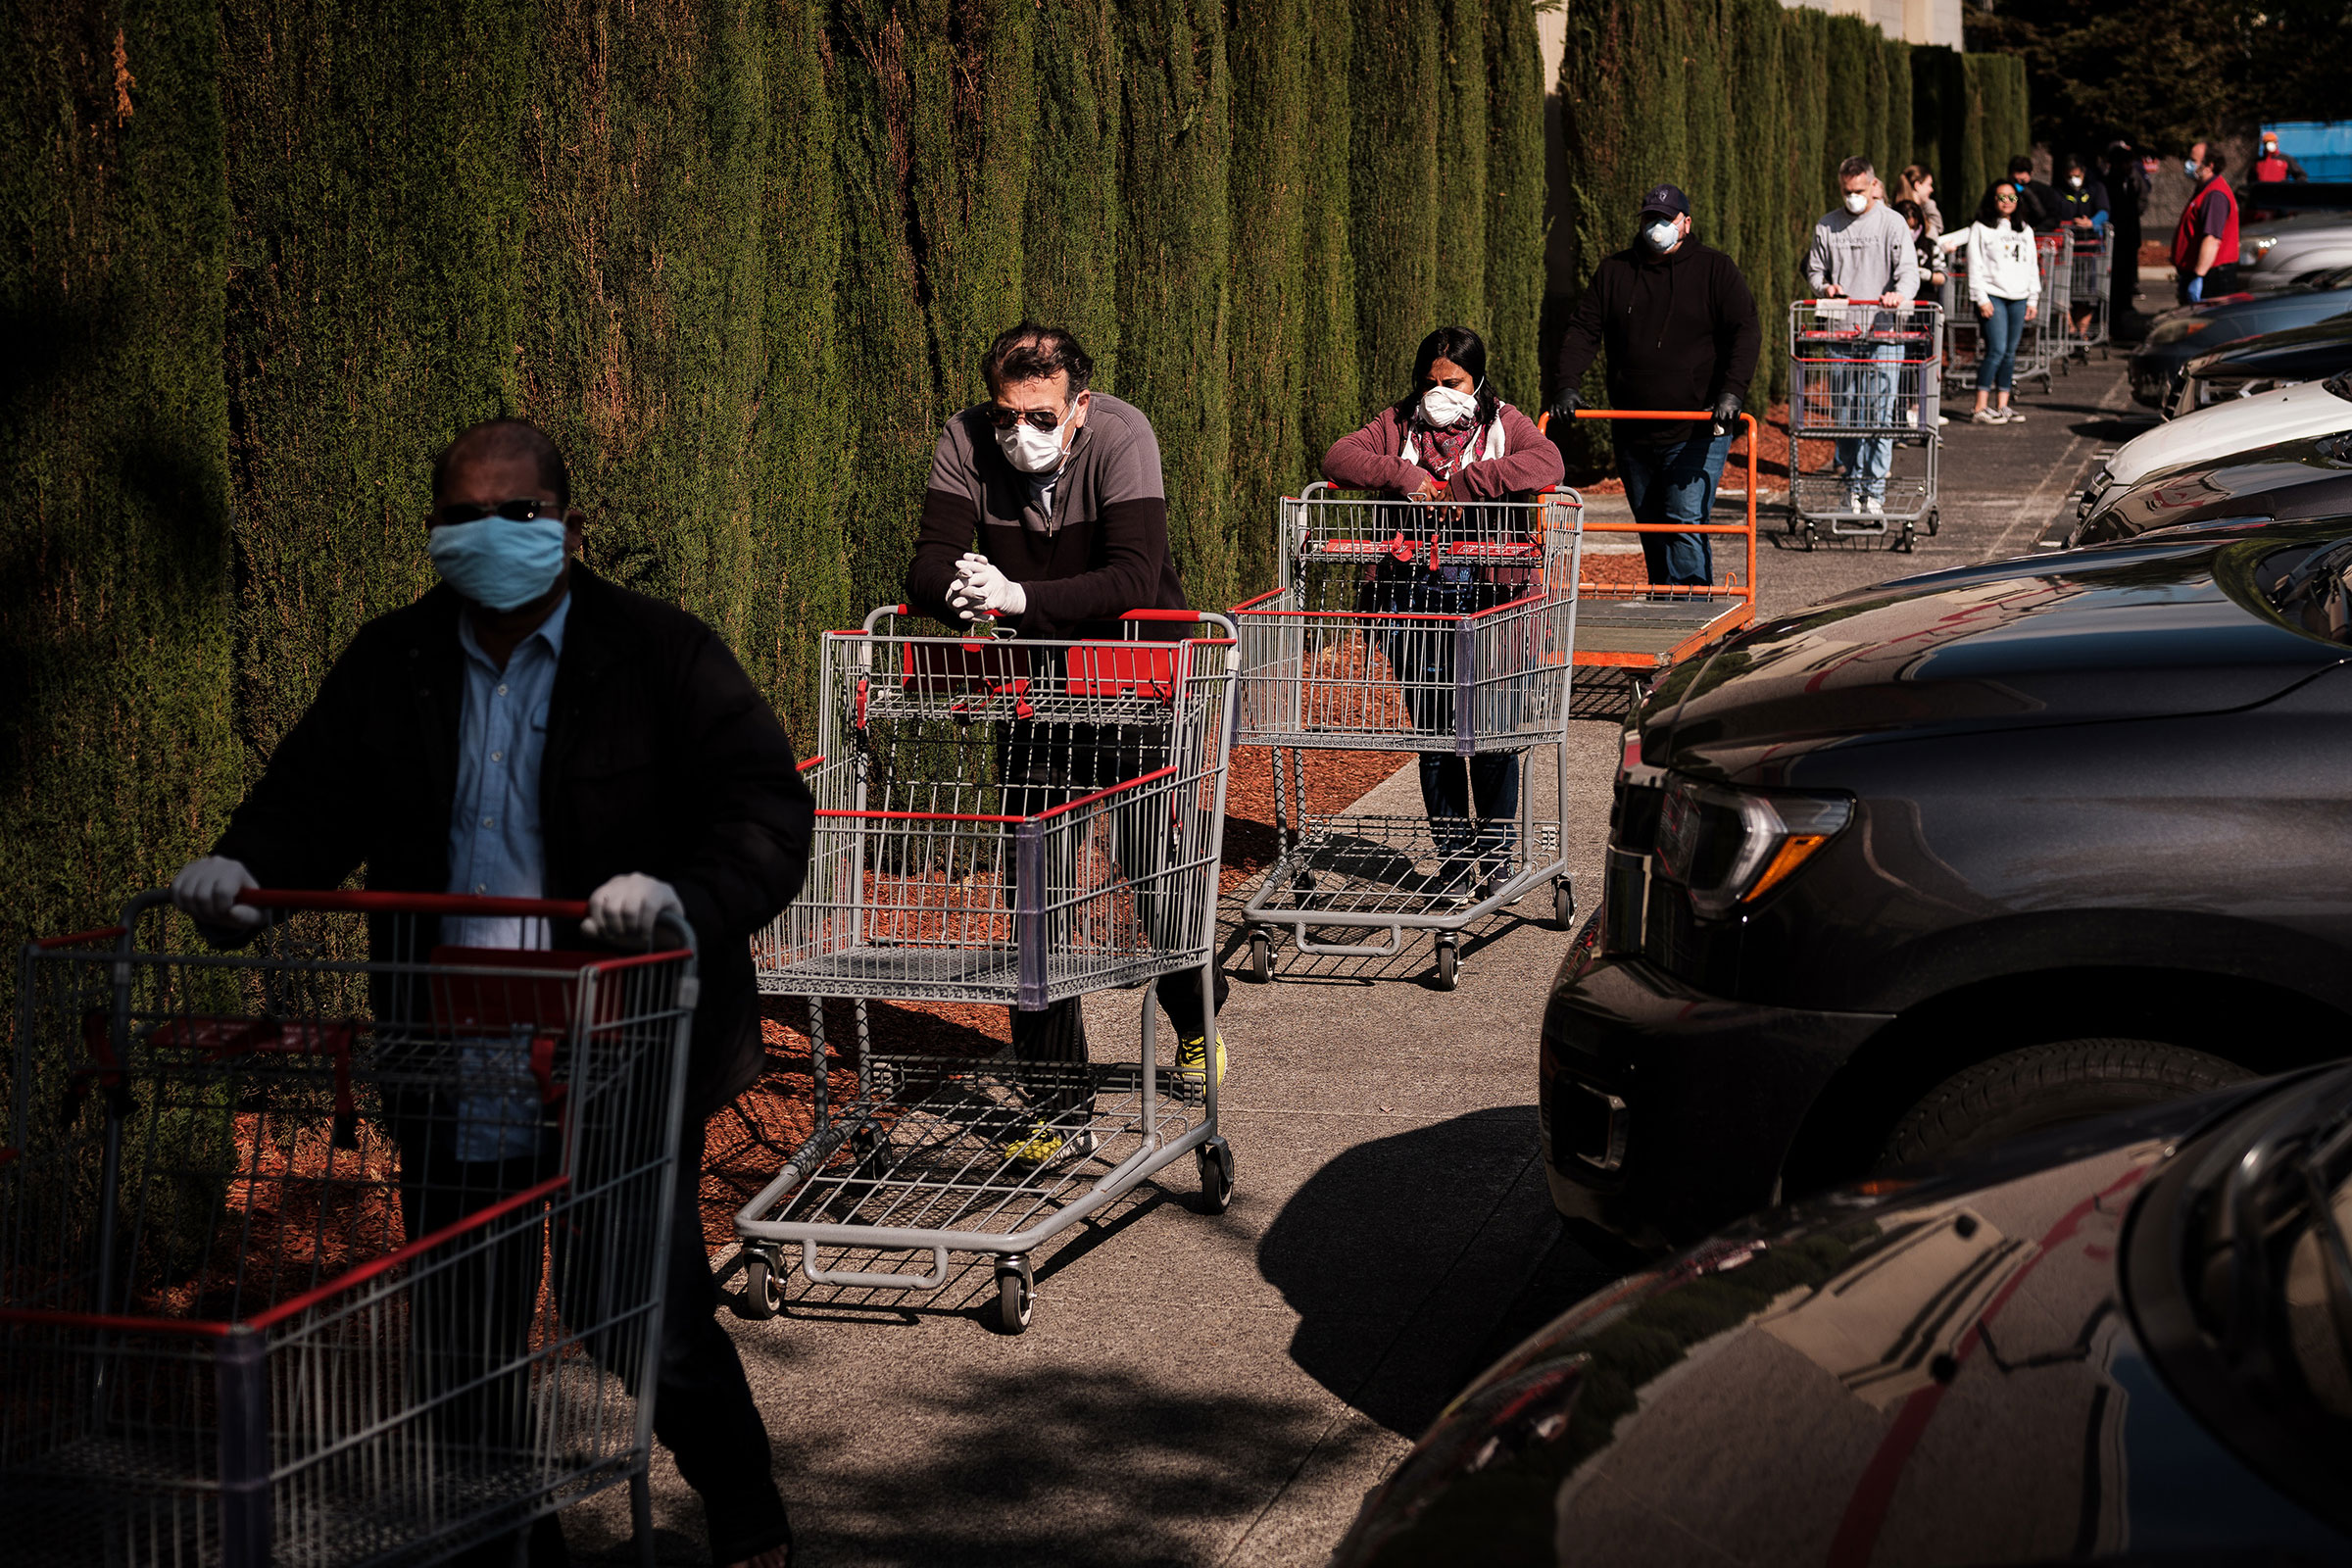 Shoppers outside a grocery store in Livermore, Calif., on April 10